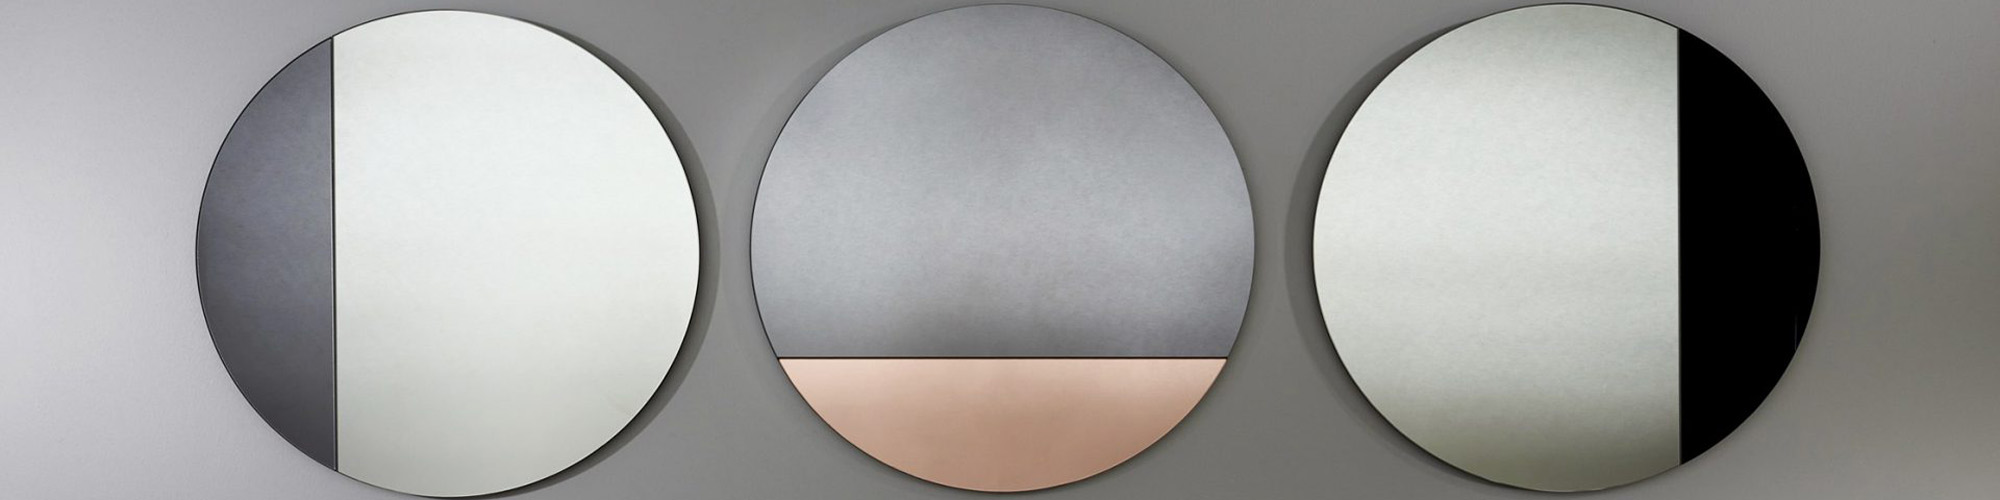 Reflections Mirrors by FCI London